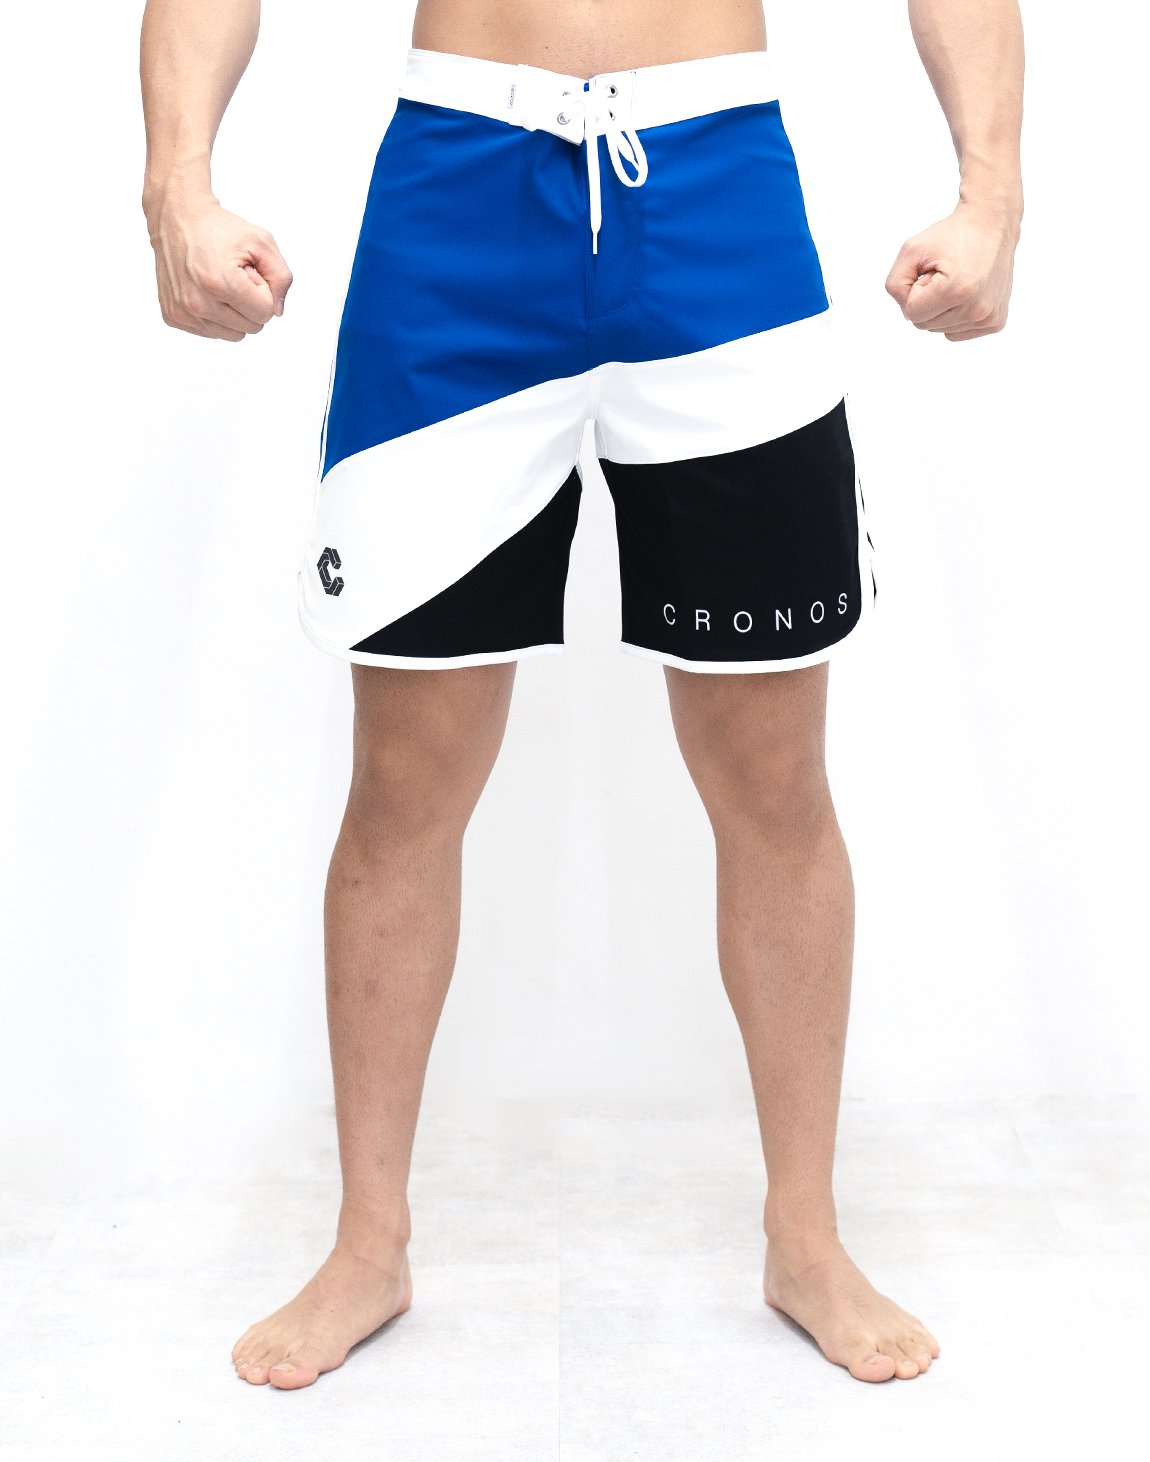 CRONOS THREE COLORS BOARD SHORTS【BLUE】